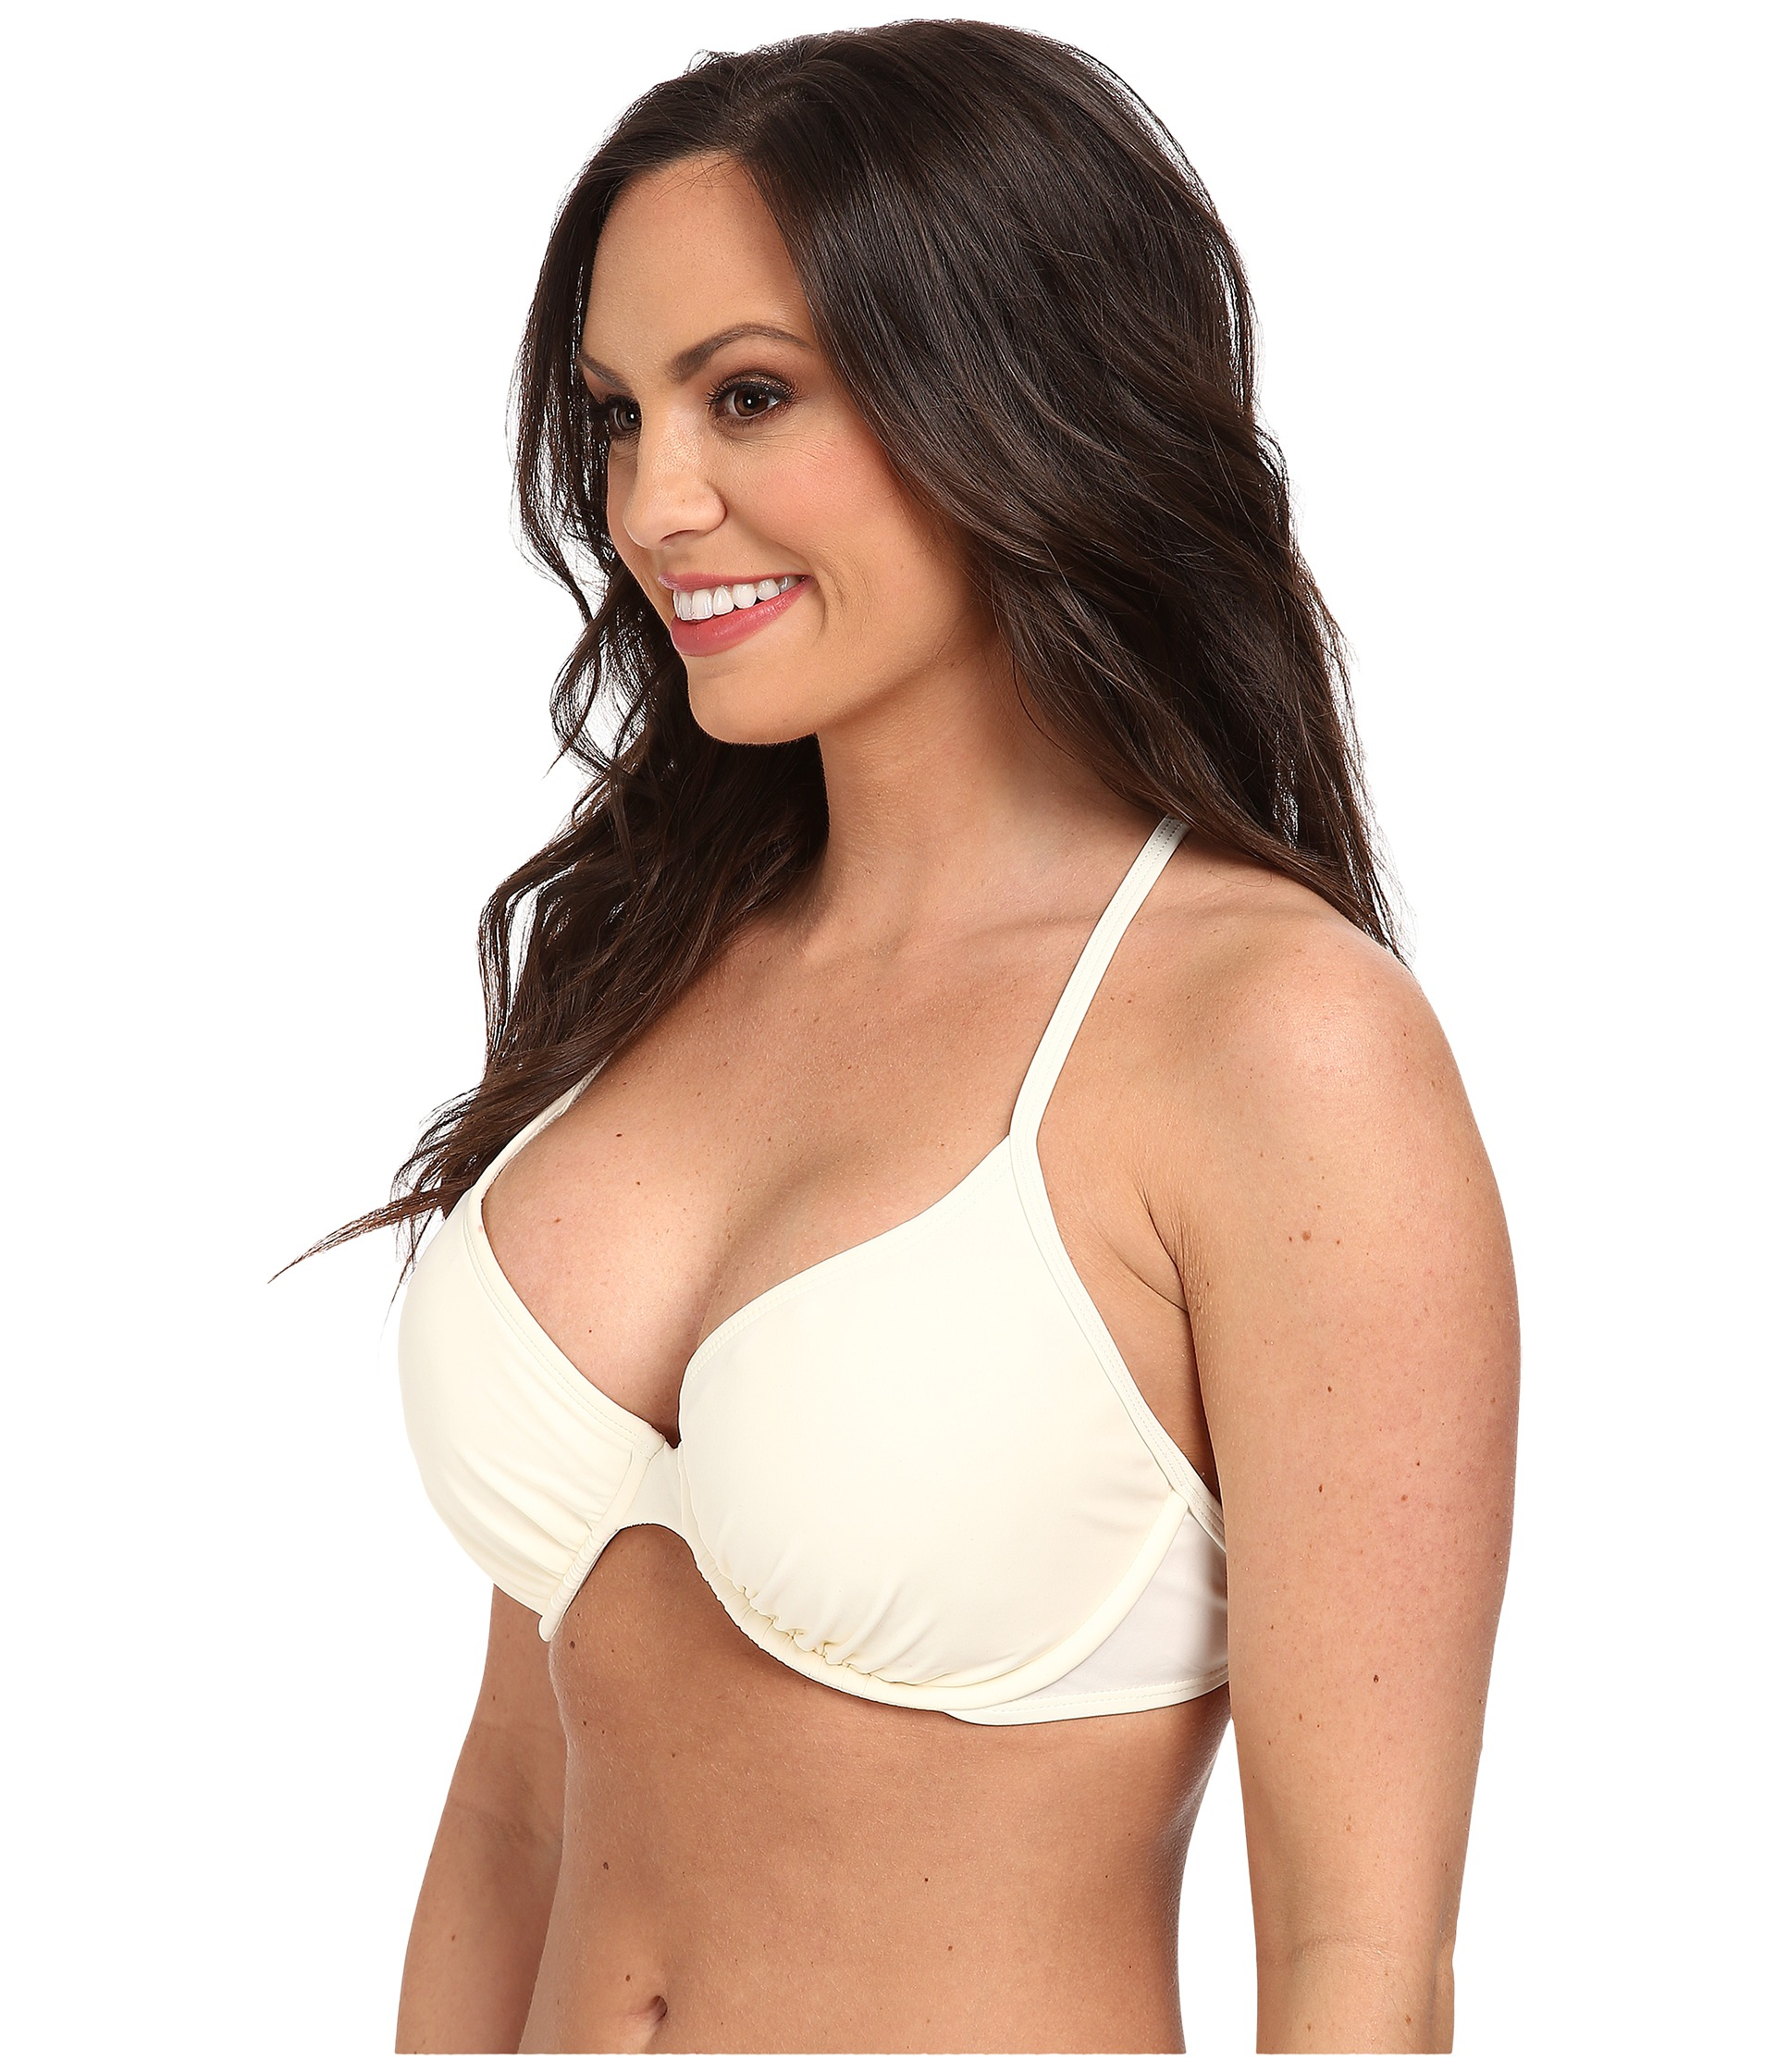 b7a897663b Body Glove Smoothies Solo Underwire Top D-Dd-E-F Cup in White - Lyst